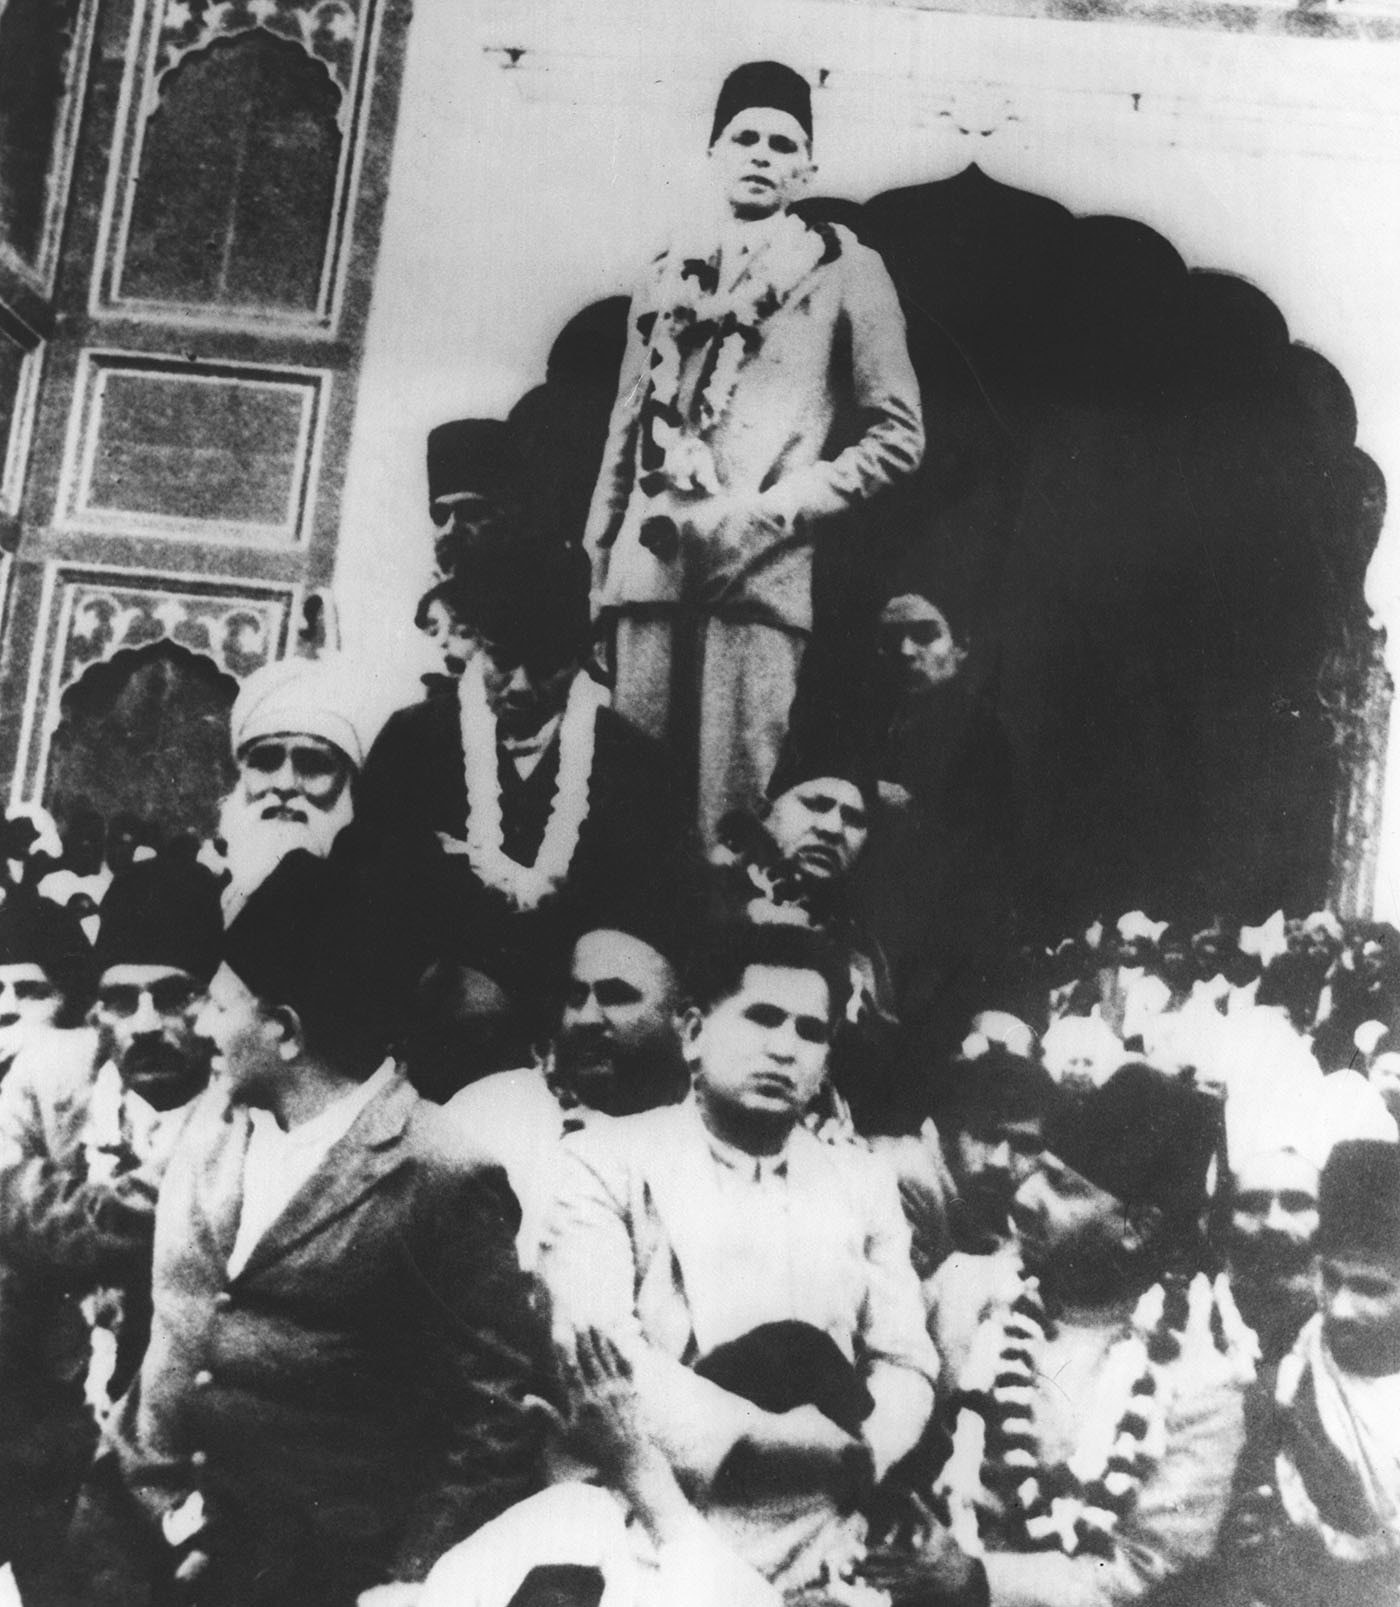 Quaid-i-Azam Mohammad Ali Jinnah campaigns at the Badshahi Mosque during the 1936-37 provincial elections. — Courtesy National Archives Islamabad